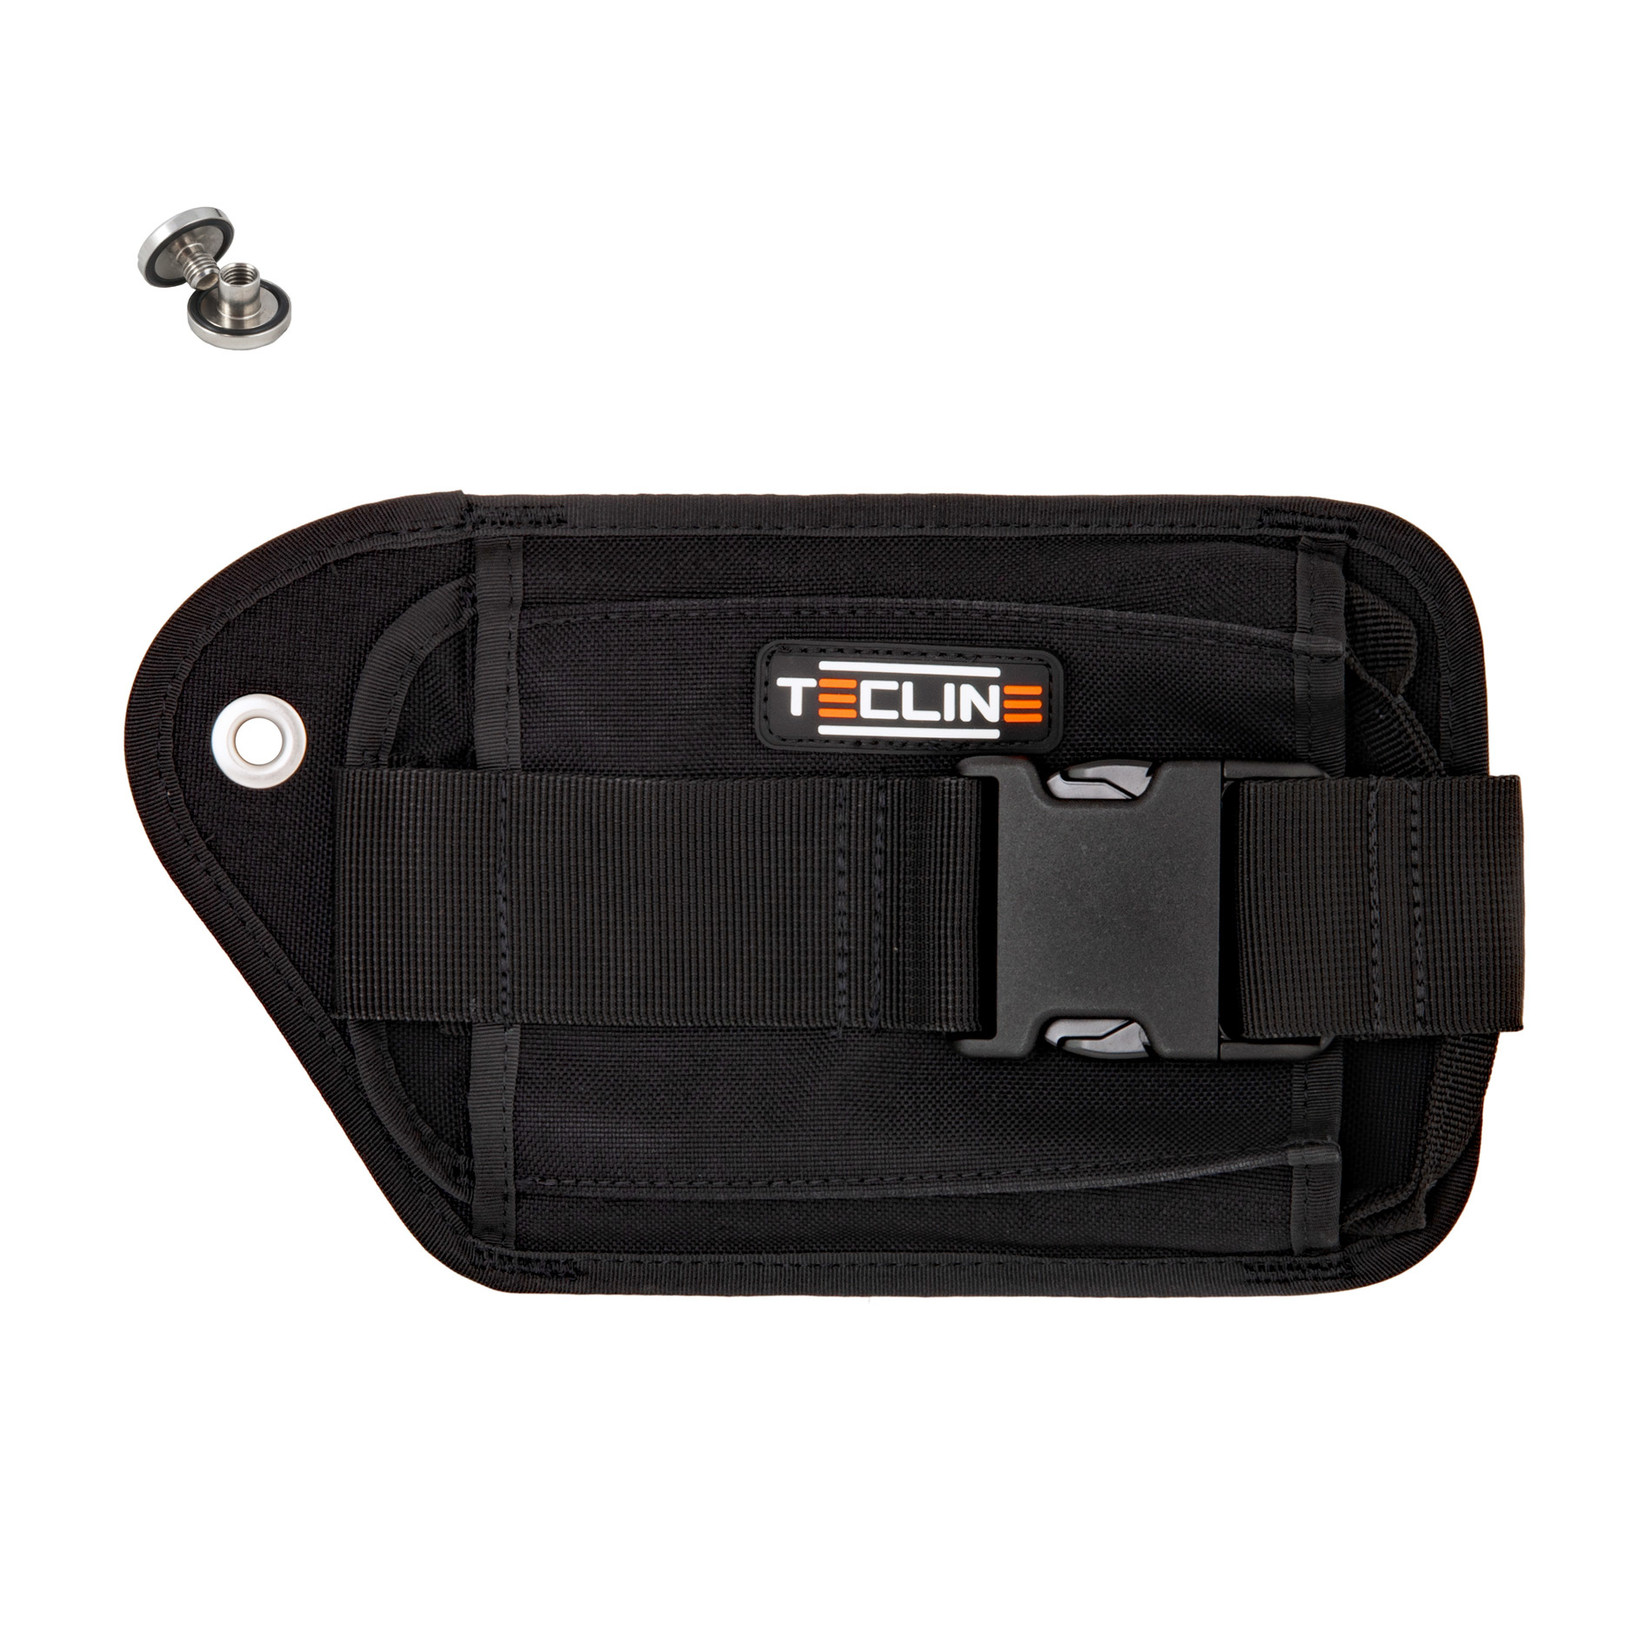 Tecline Double weight pocket, right - Tecline